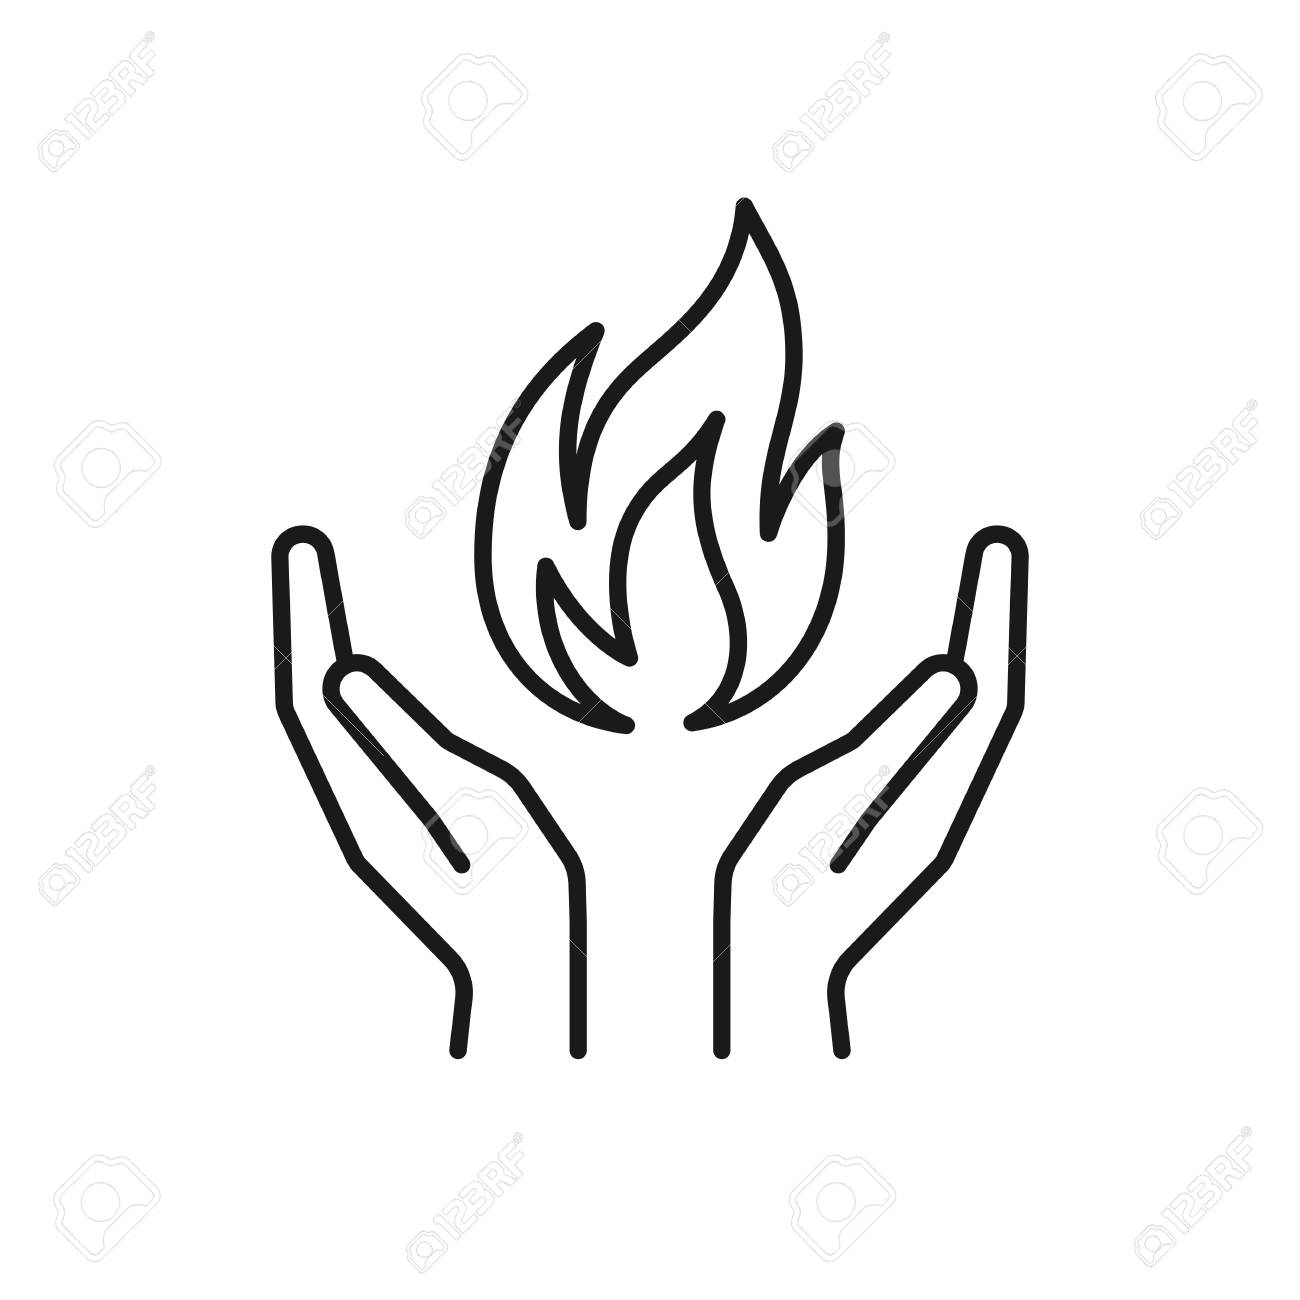 Isolated black outline icon of flame in hands on white background.